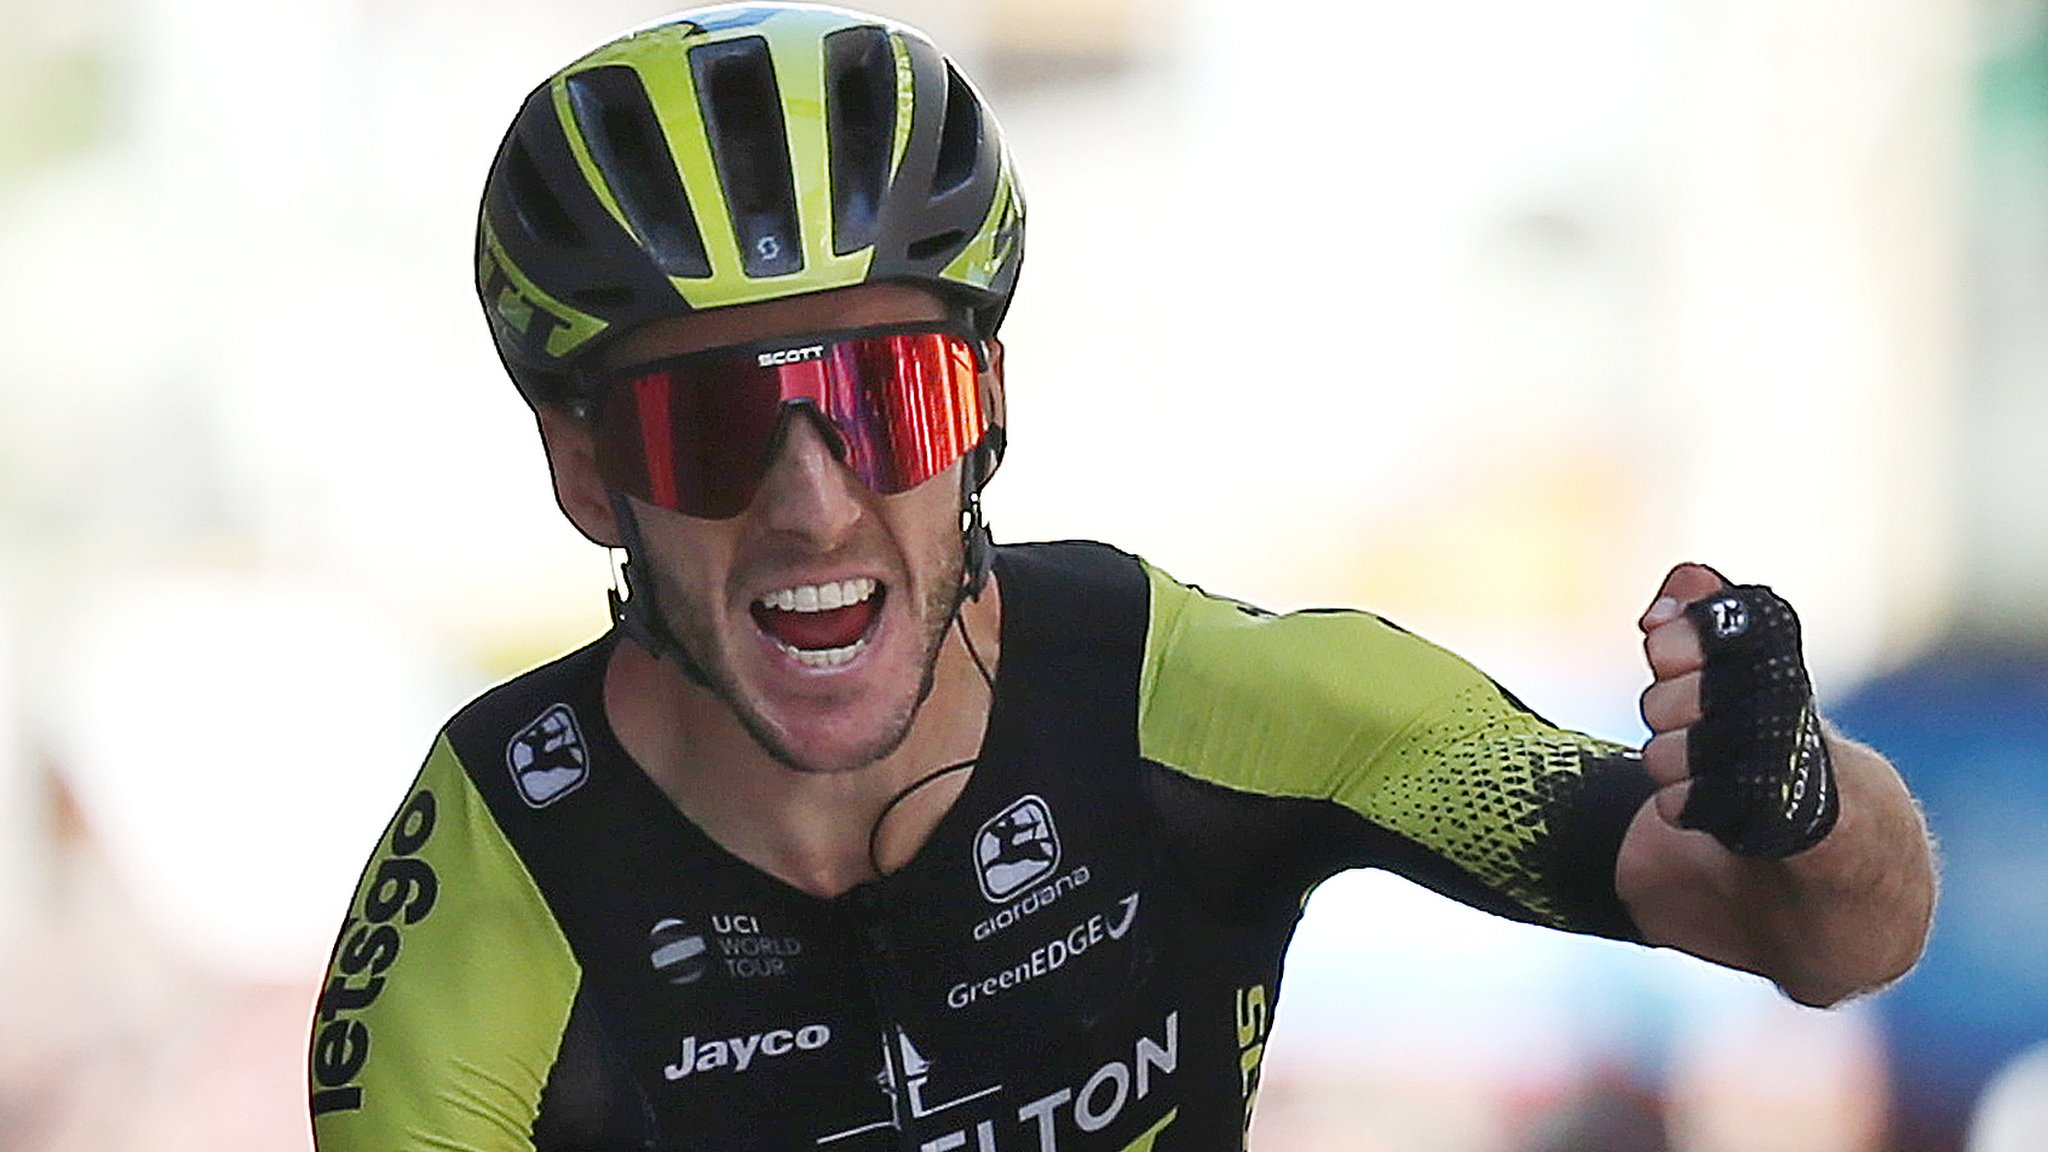 Tour of the Basque Country: Adam Yates takes final stage as Ion Izagirre wins event